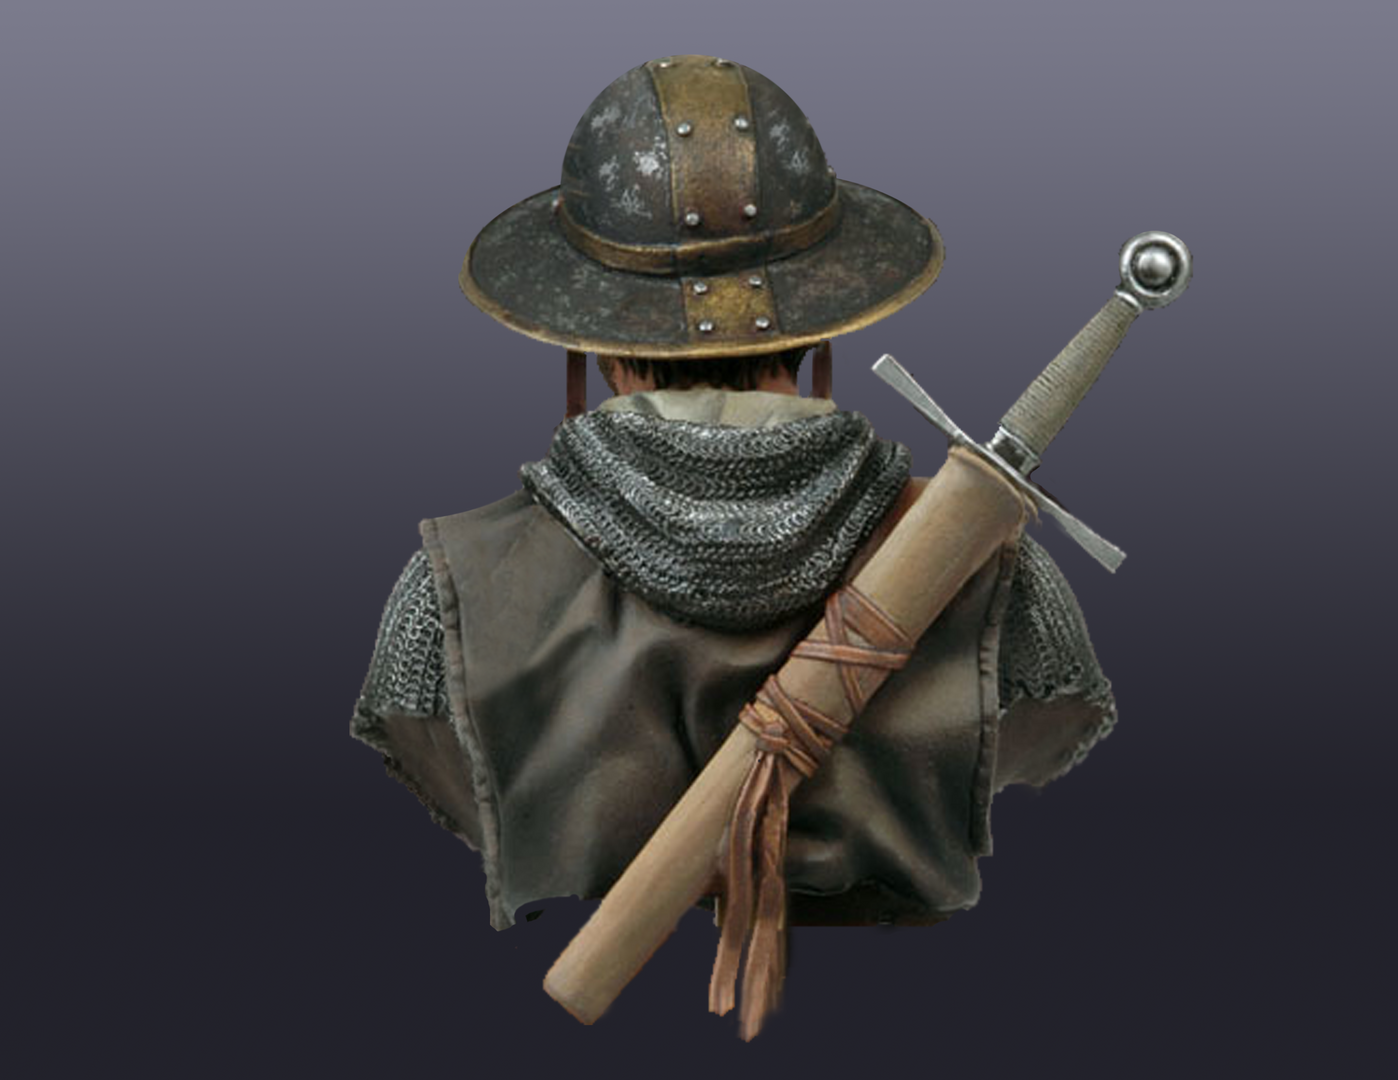 Middle Ages Warrior_3_00004.png